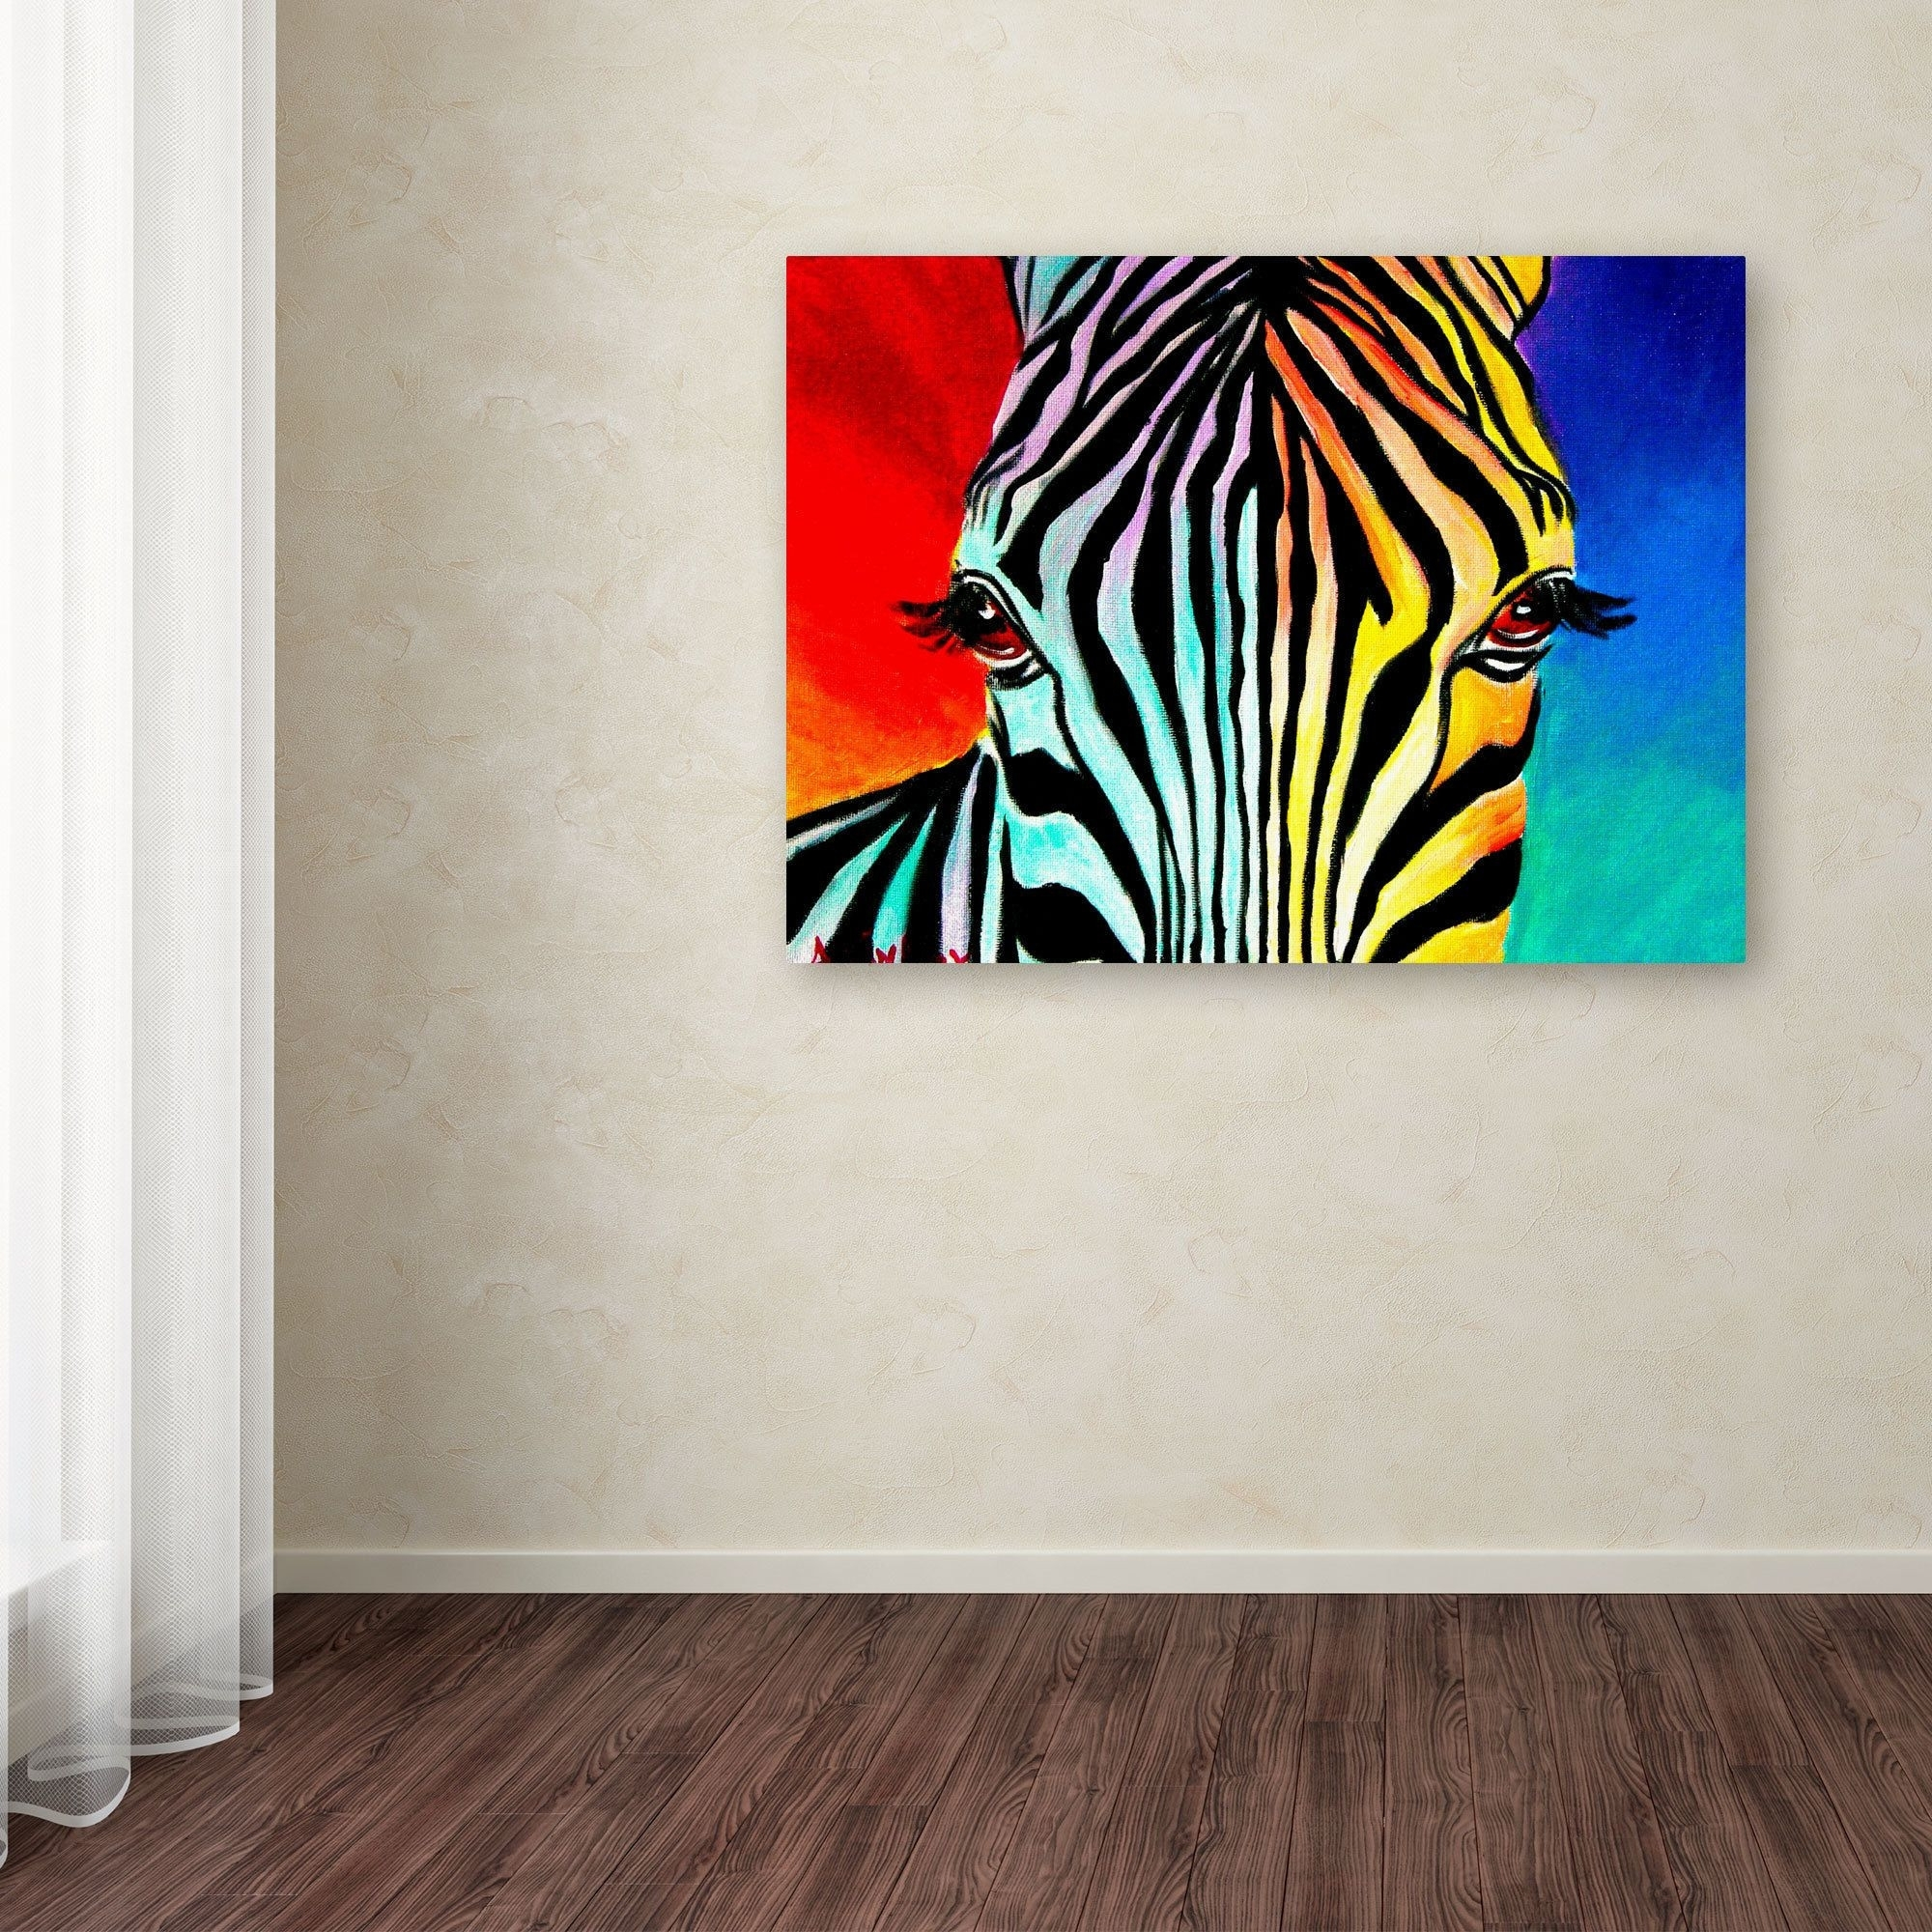 Dawgart Zebra Canvas Art Inspiration Of Overstock Wall Art | Wall Within Recent Overstock Wall Art (View 2 of 20)